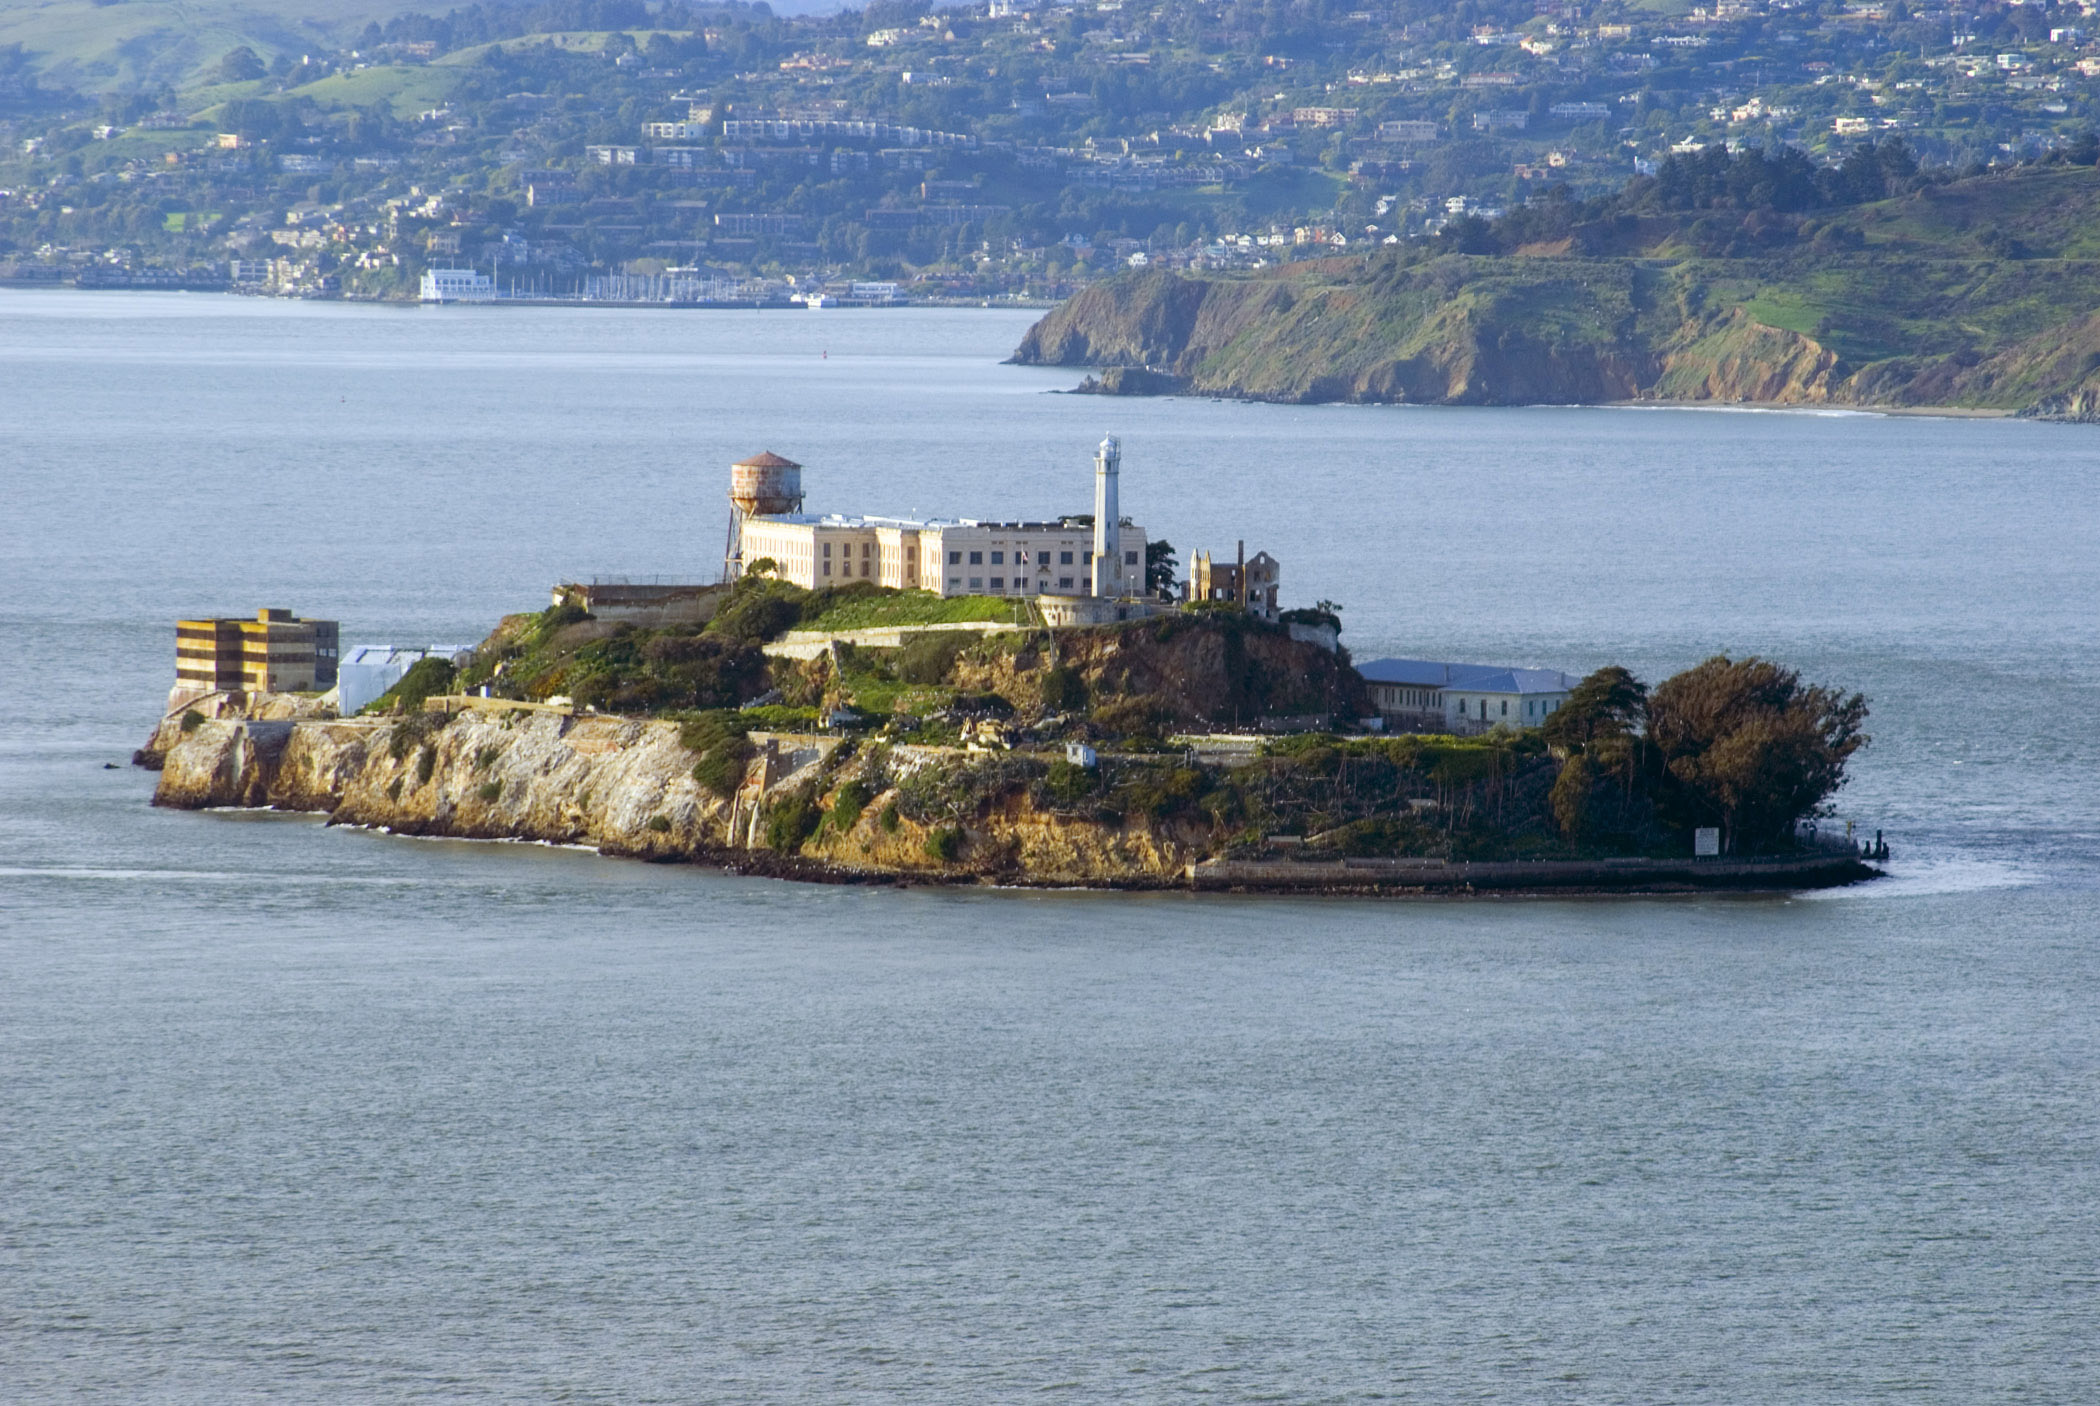 Scenic view of Alcatraz Island in San Francisco Bay with its famous impenetrable fortress prison, now decommissioned and a popular tourist attraction